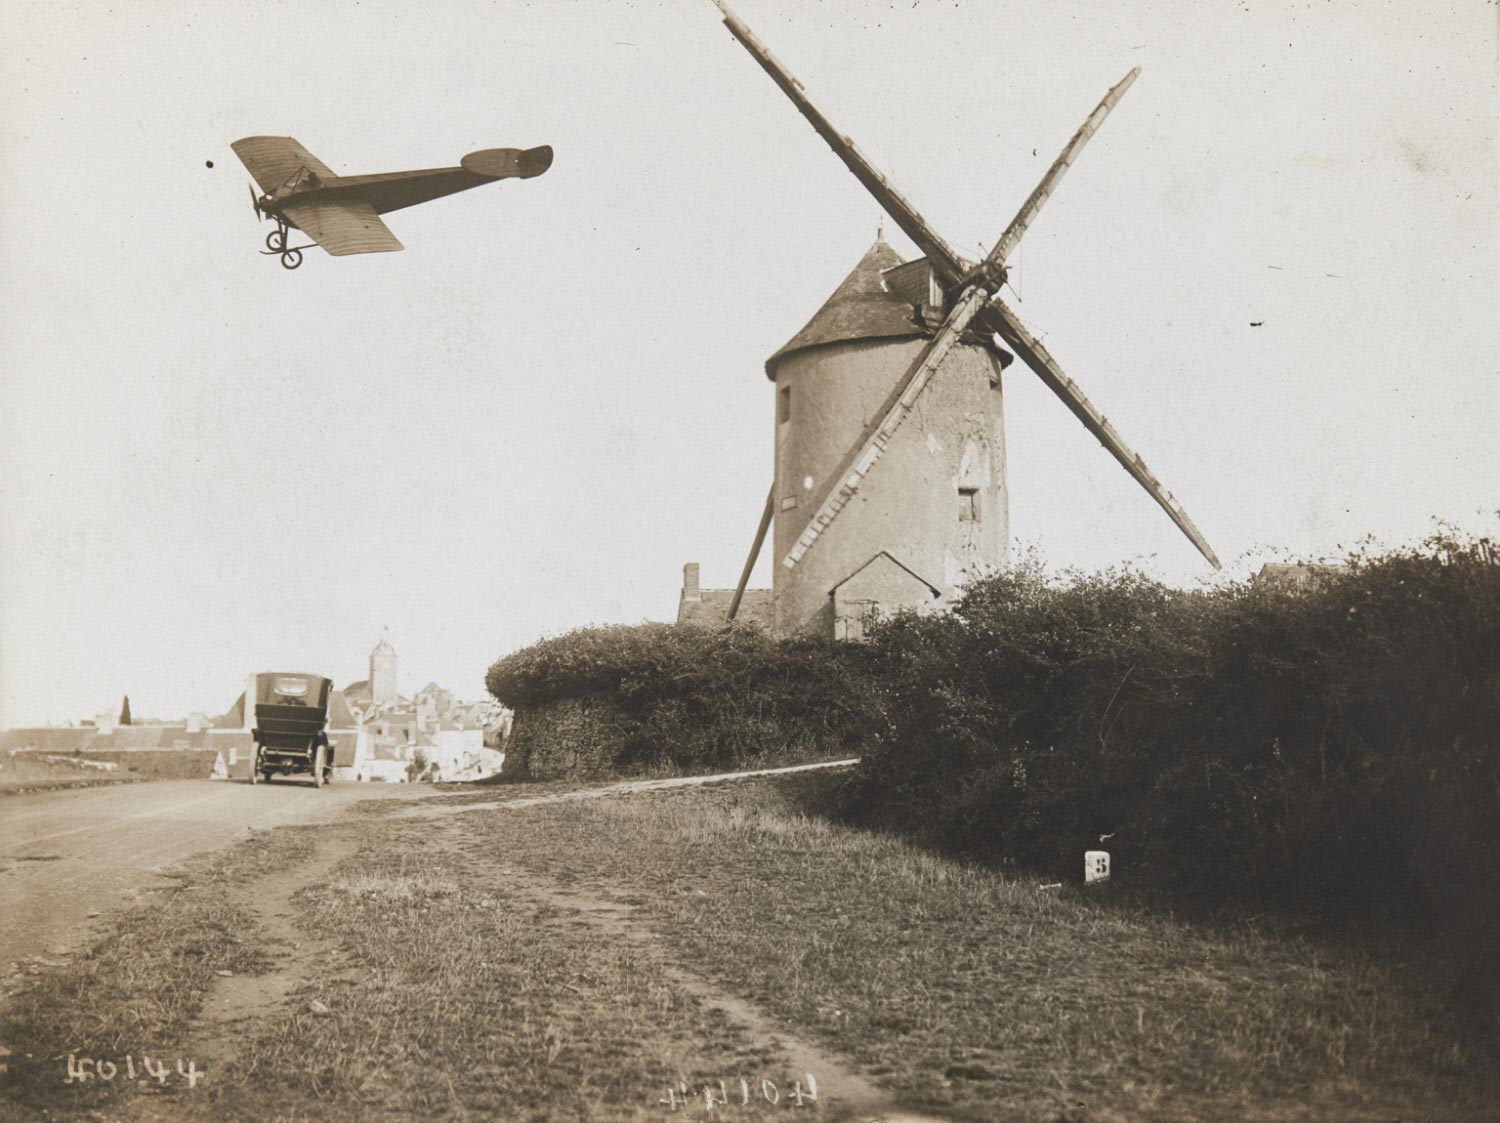 Grand Prix d'Anjou: Espanet in His Nieuport Passing Over the Windmill of Couture